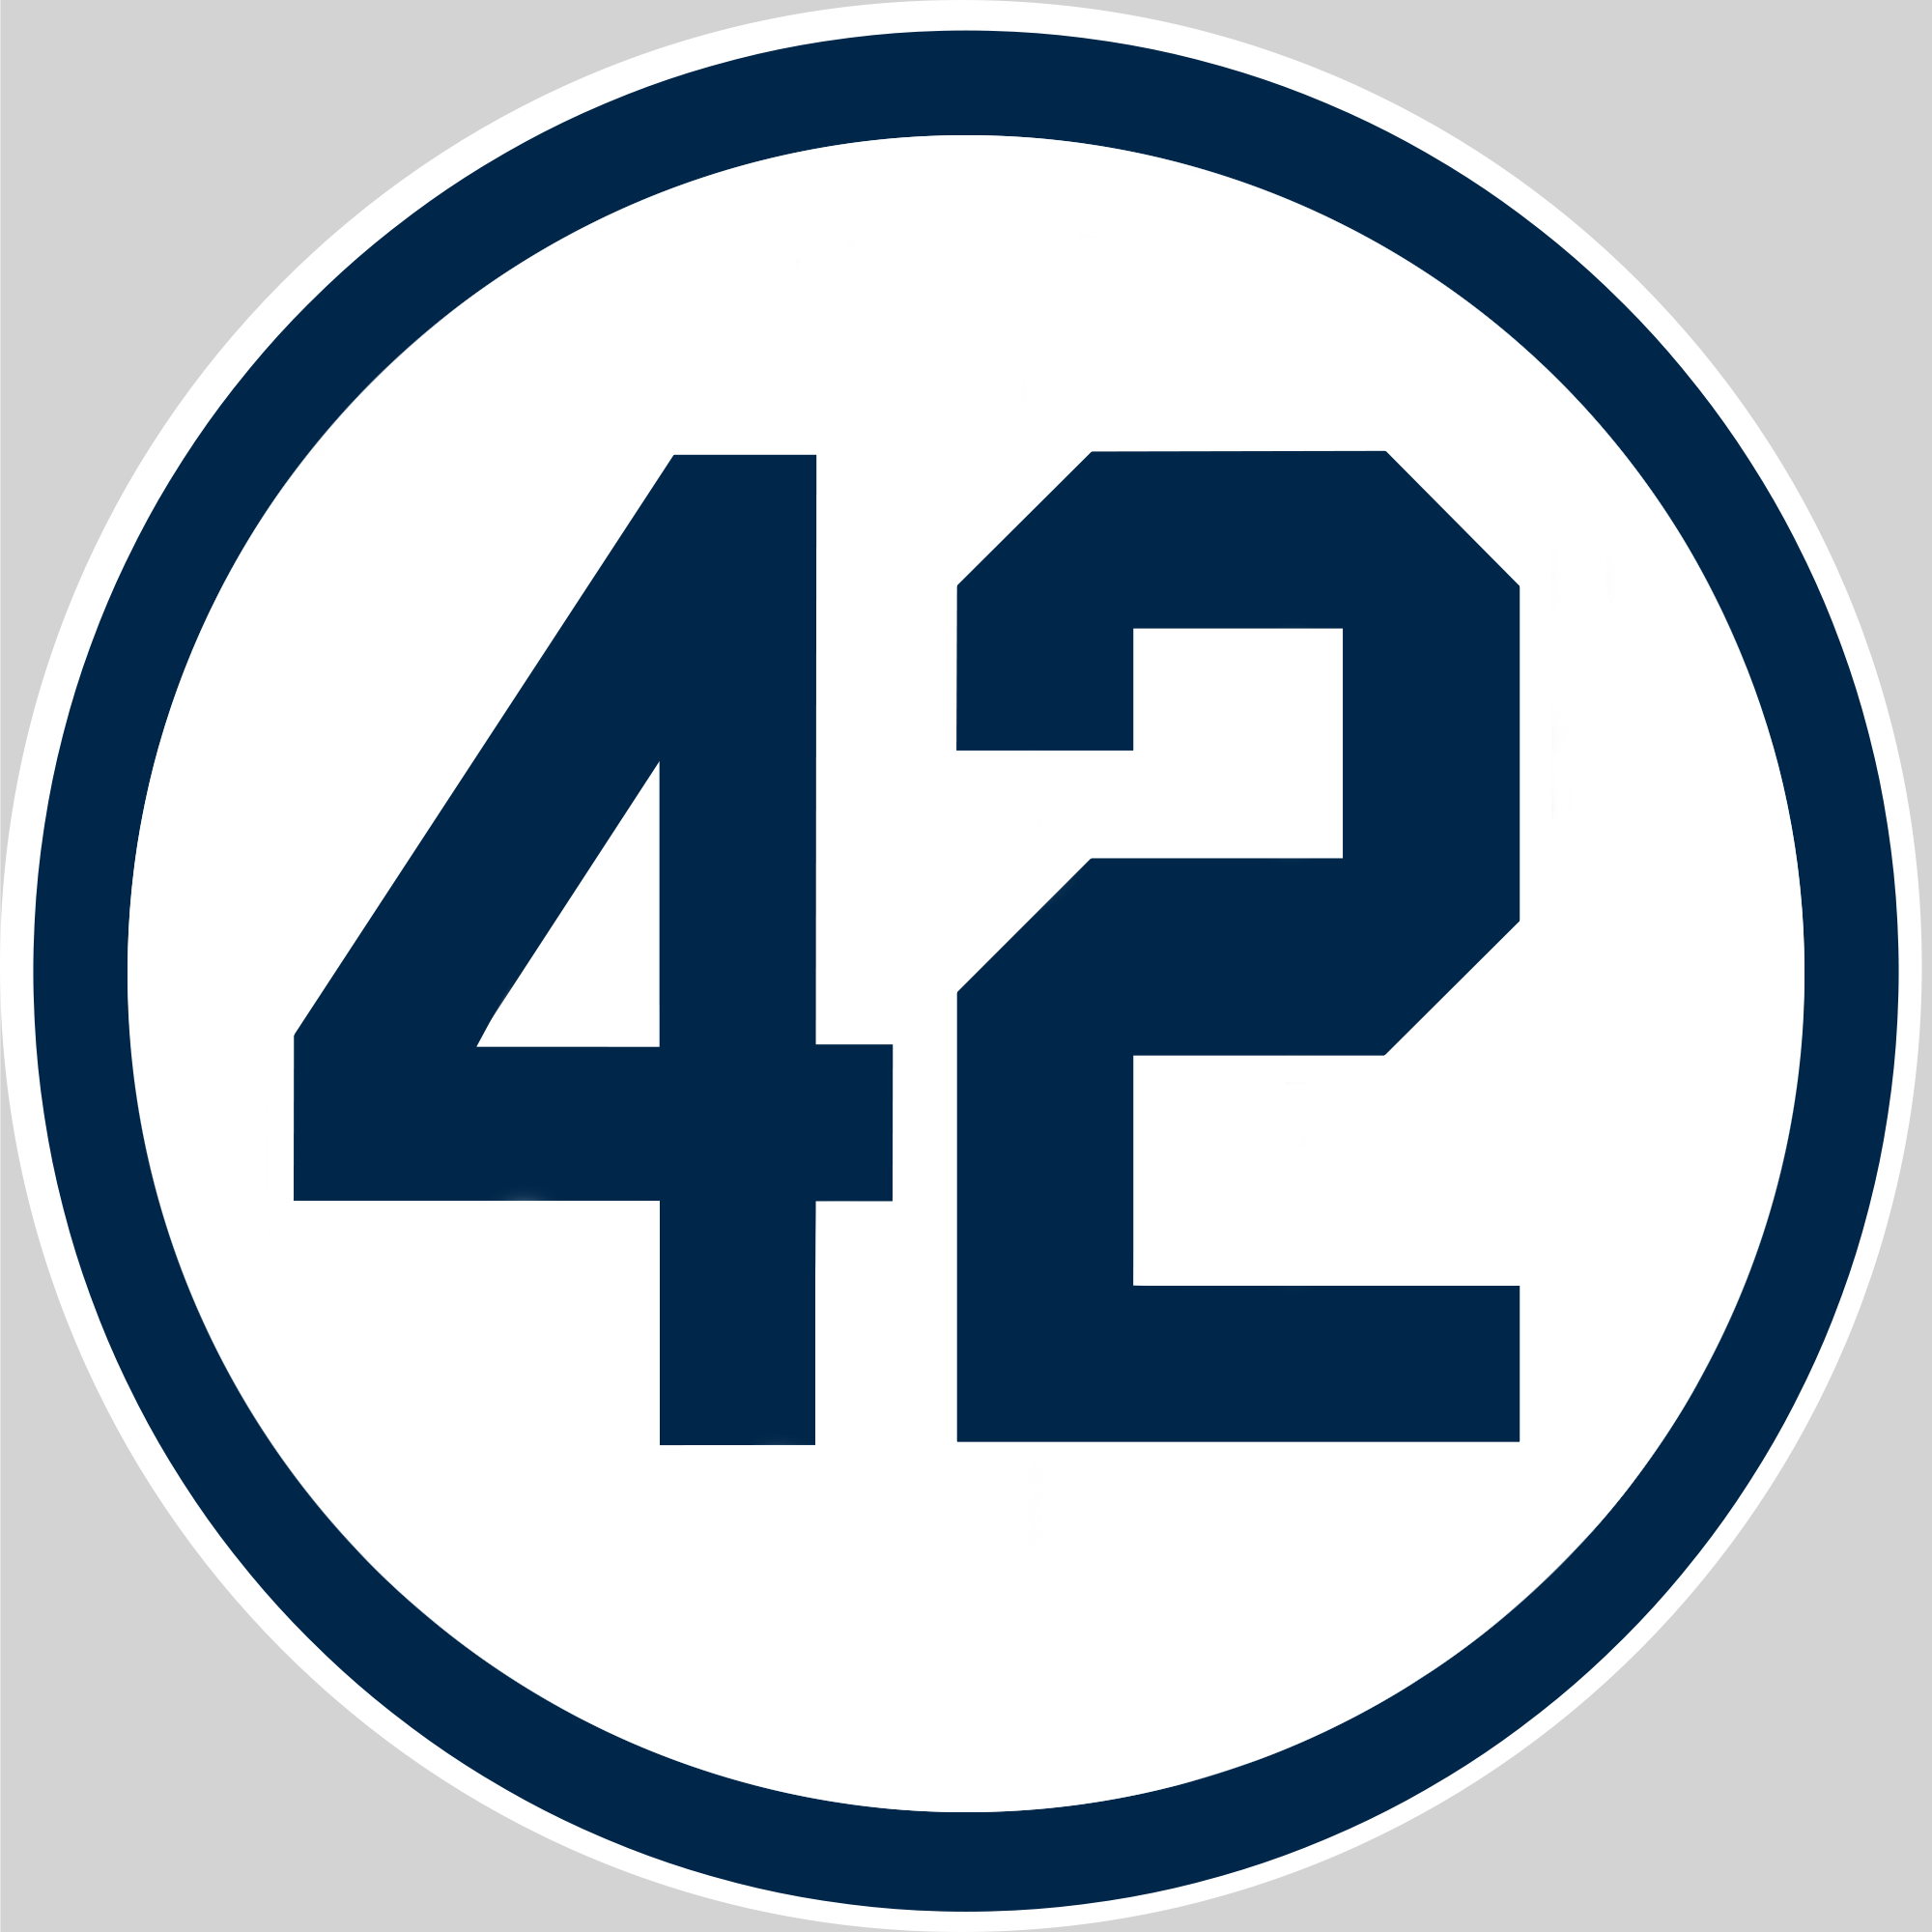 Jackie robinson ny yankees retired number sports jackie robinson ny yankees retired number biocorpaavc